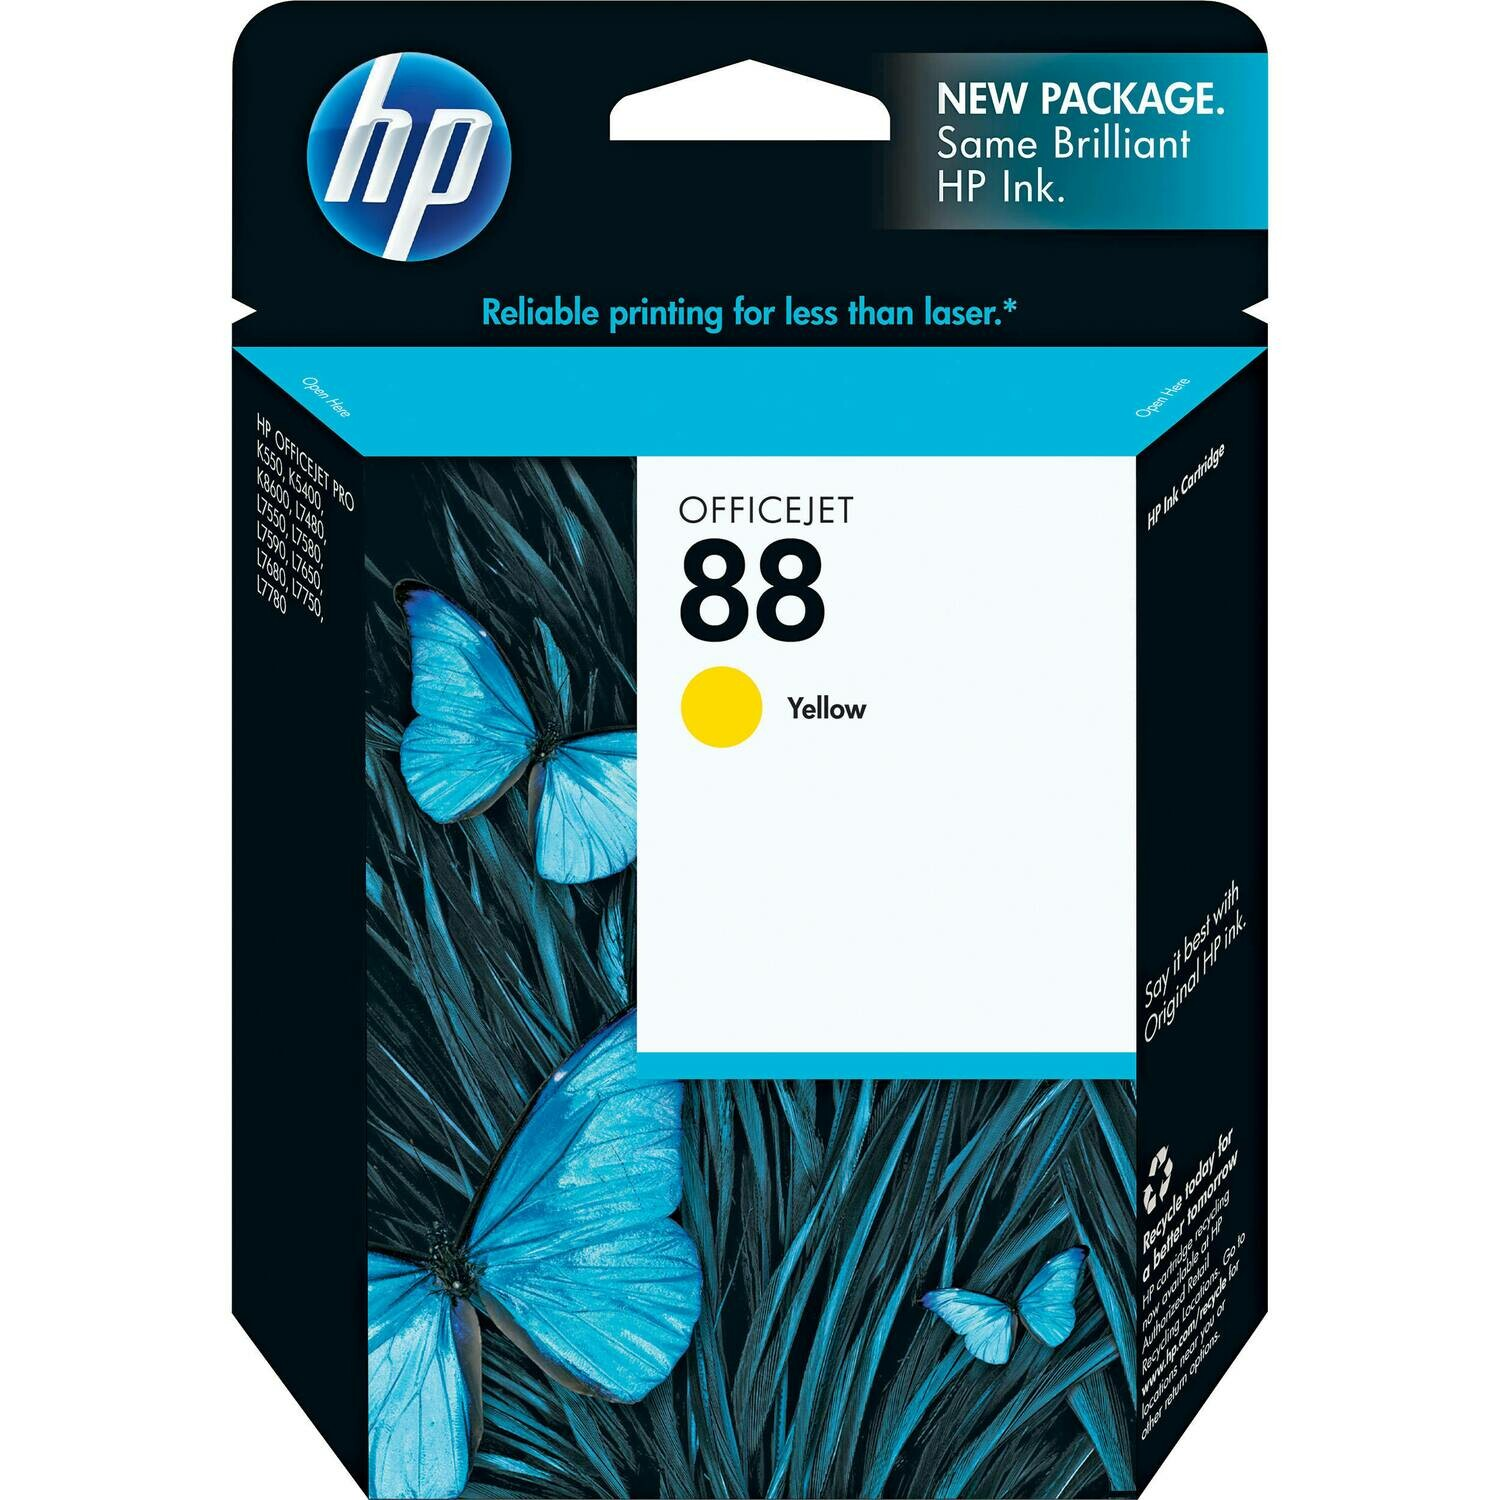 HP 88 YELLOW-PRINTS UPTO 860 PAGES